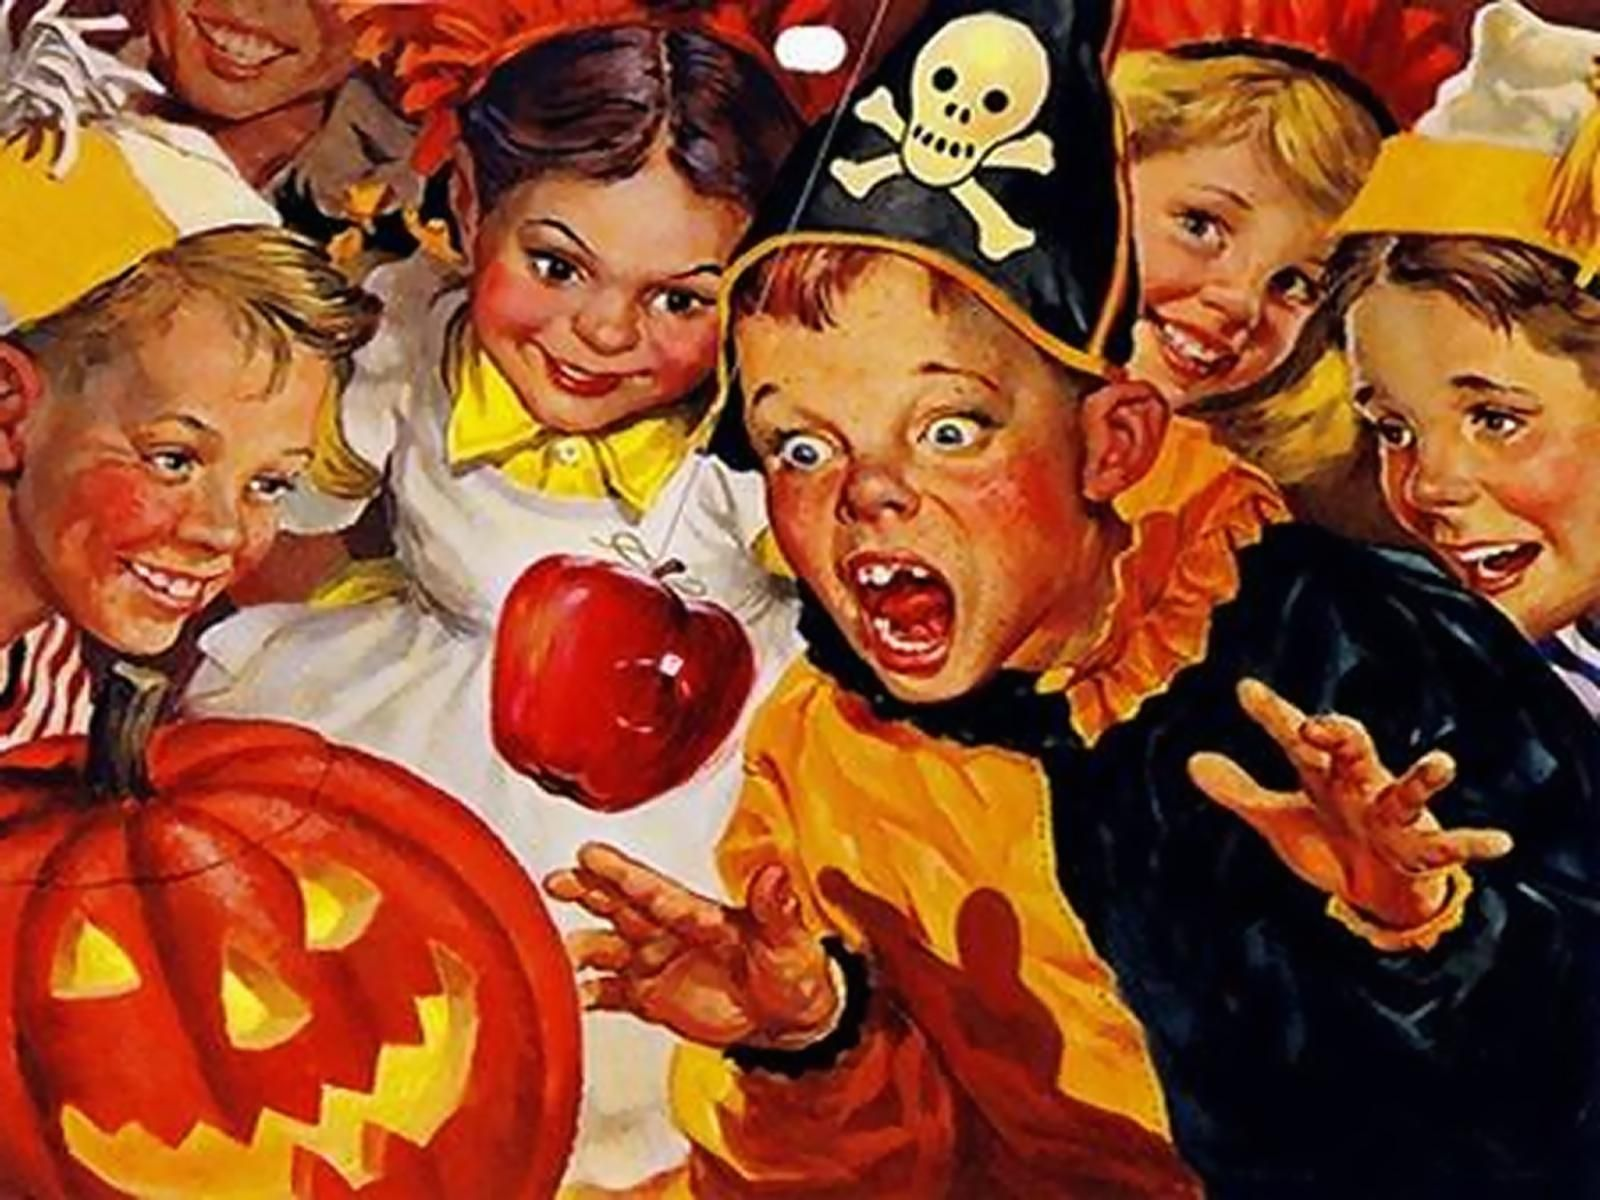 Must see Wallpaper Halloween Vintage - e39c6499cbaf5af43195adf9ead5091f  Collection_626850.jpg